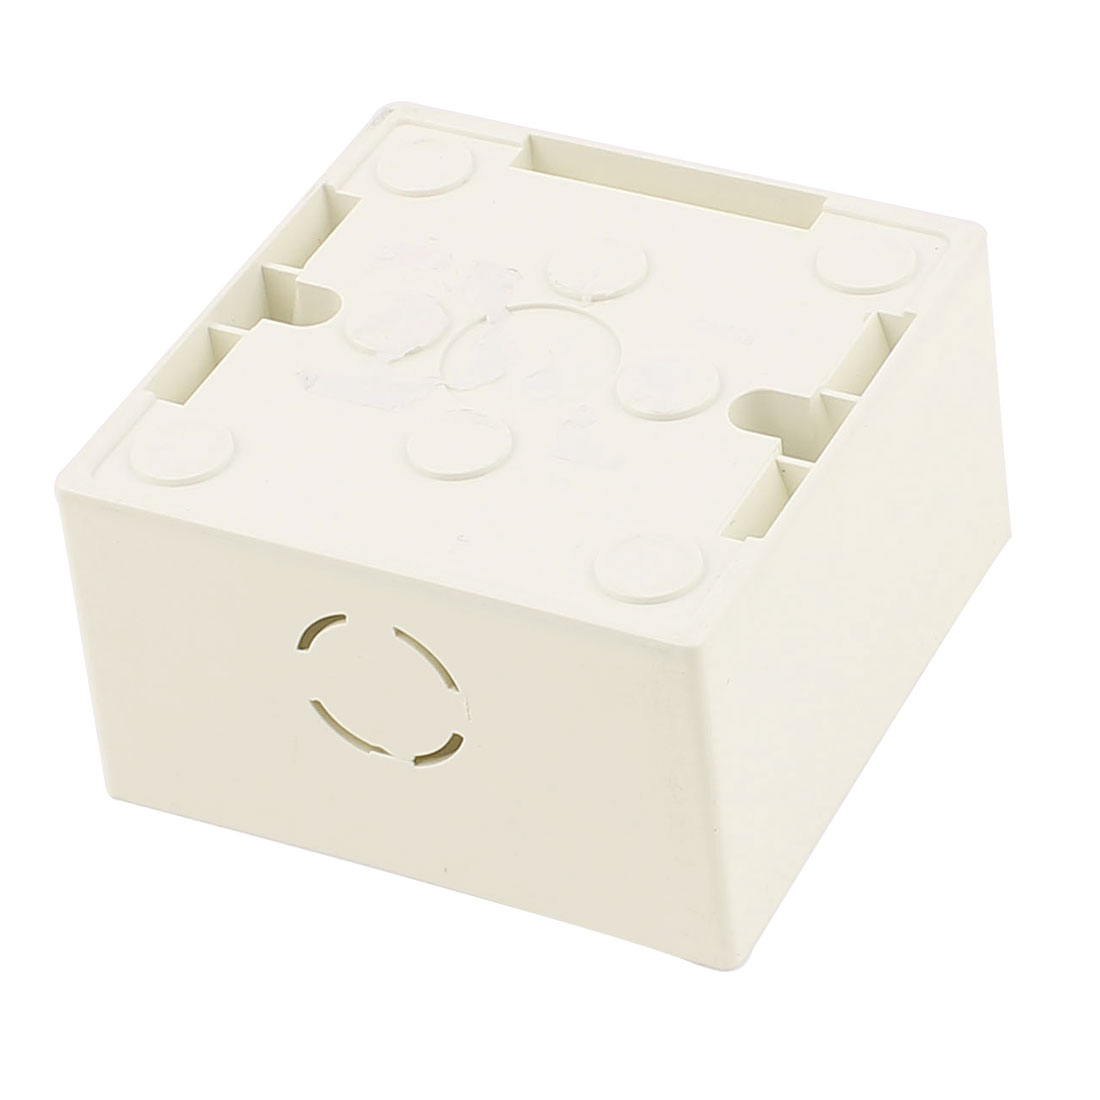 86mm x 86mm x 45mm White PVC Mount Wallpanel Single Gang Junction Box